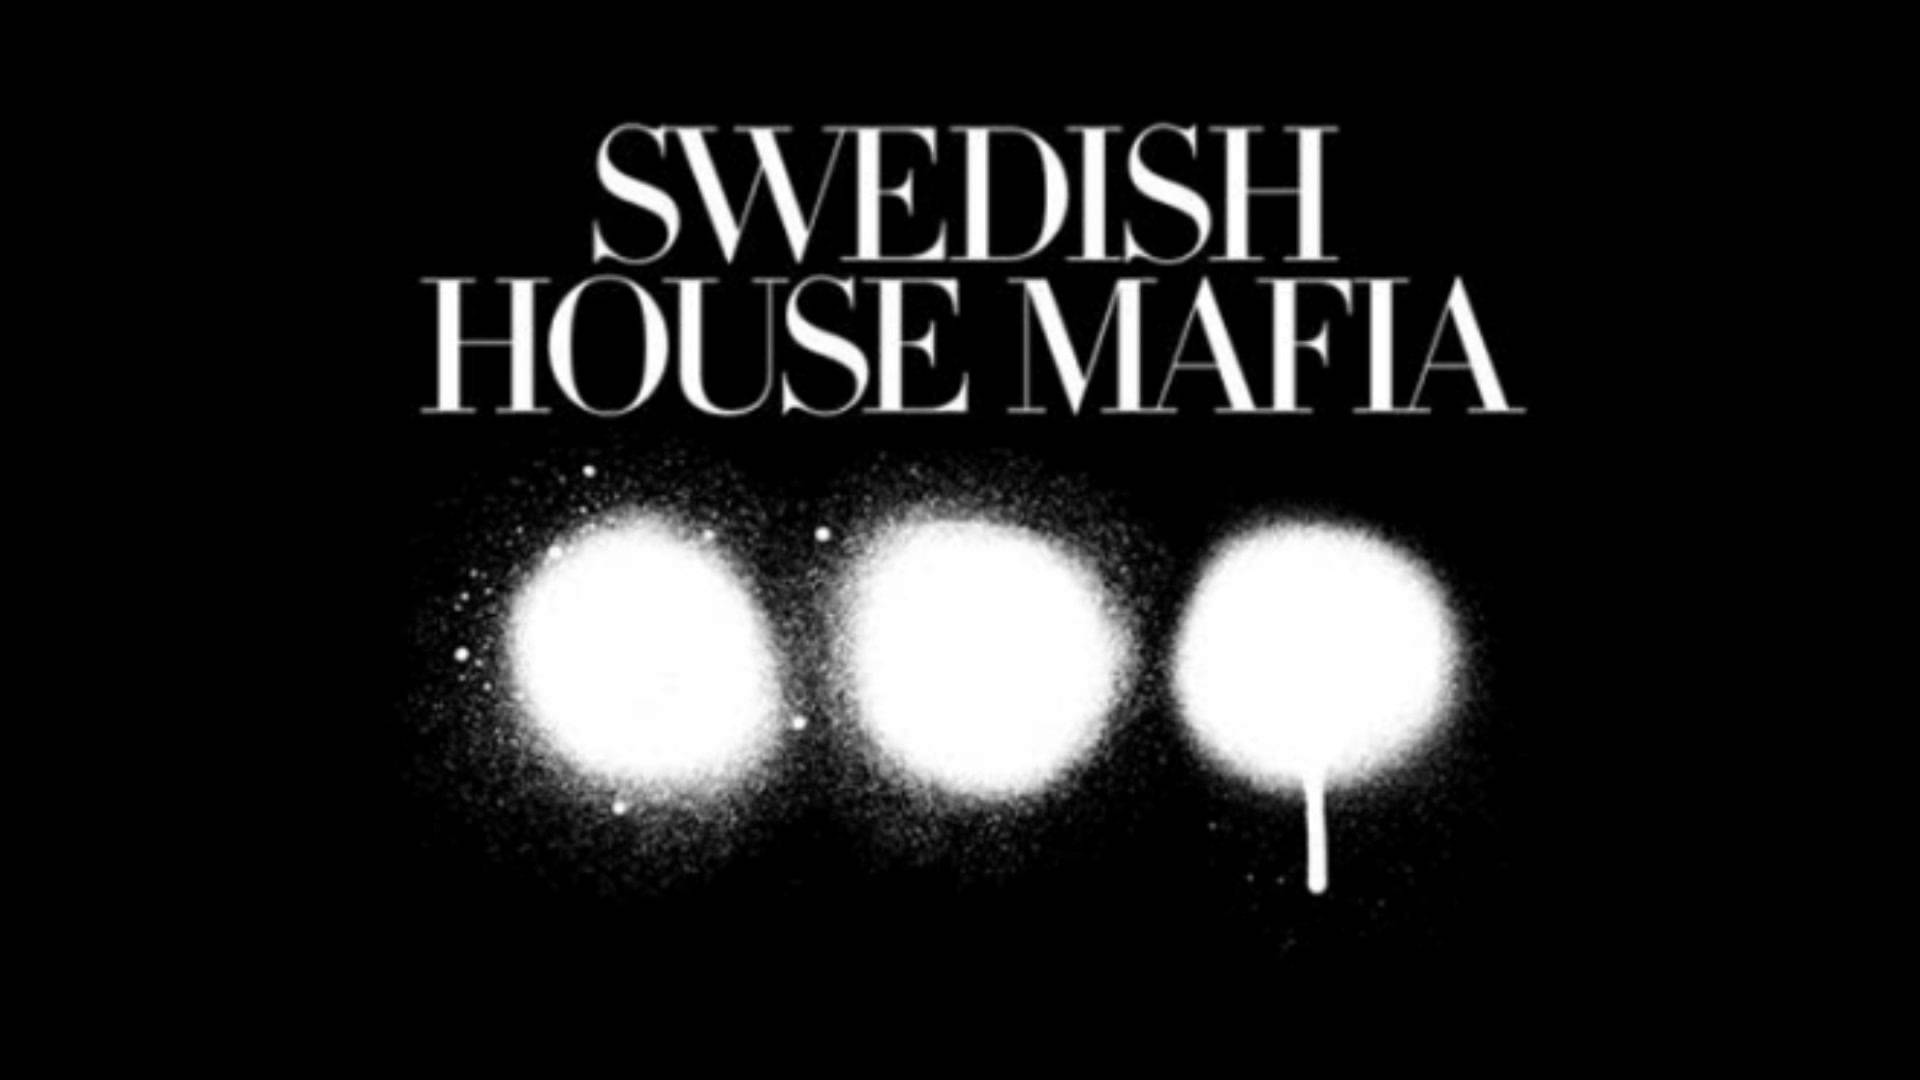 Swedish House Mafia - Show Me Love